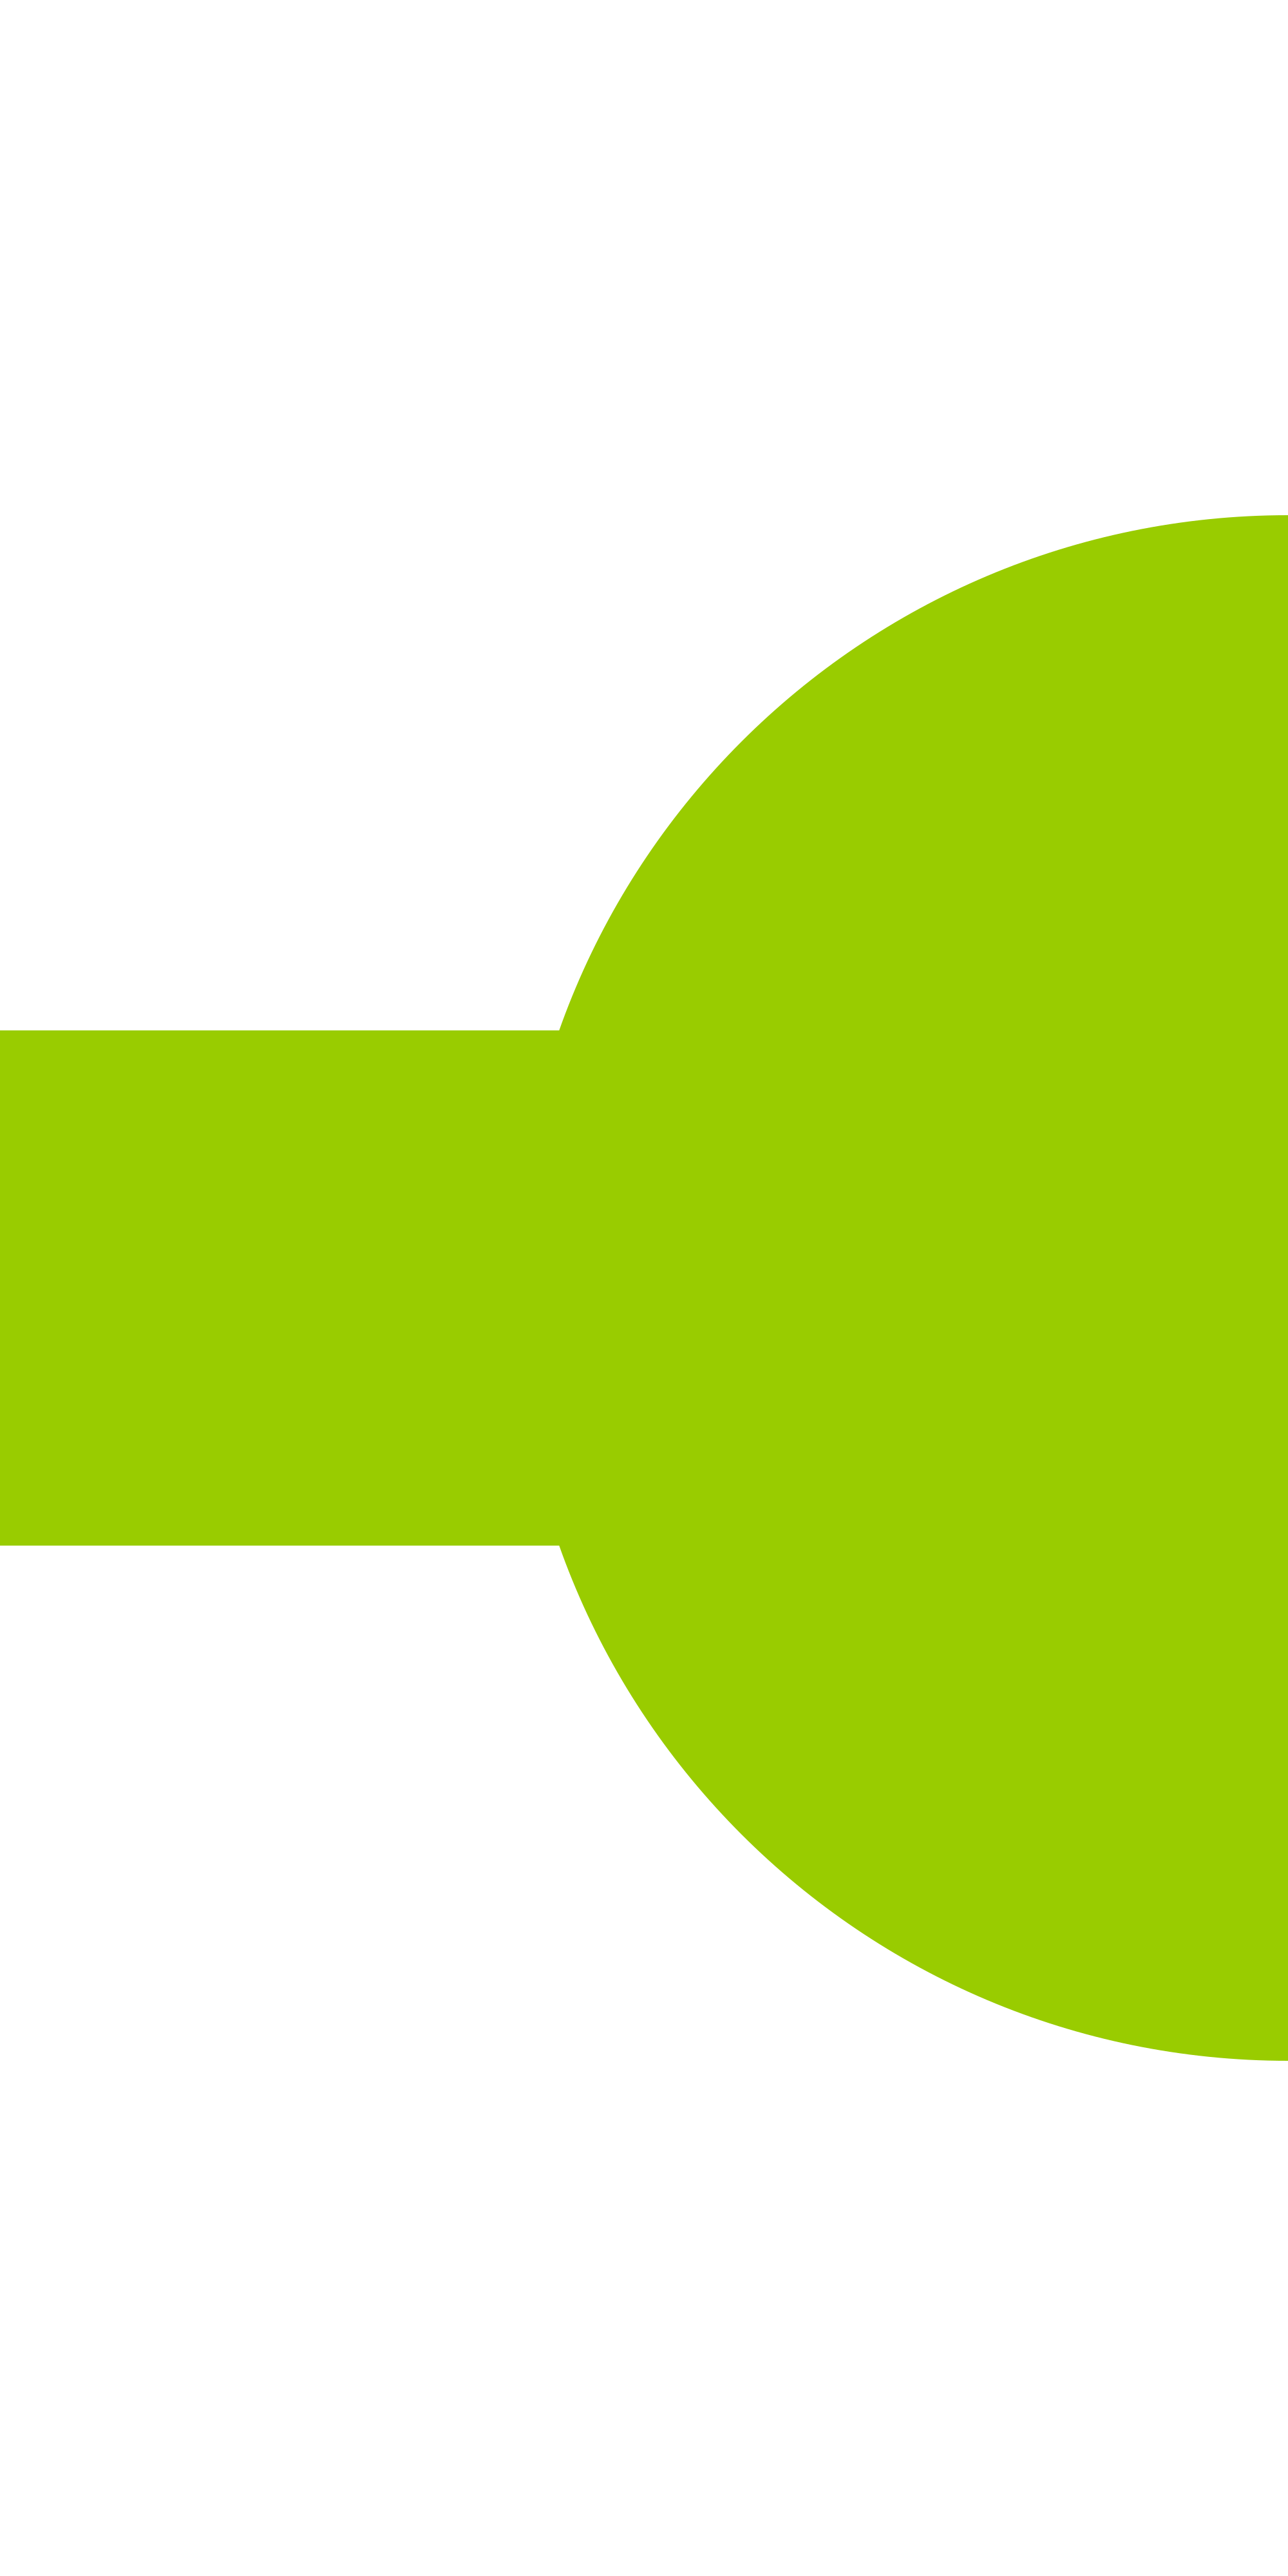 Lime svg. File bsicon dbhf fq